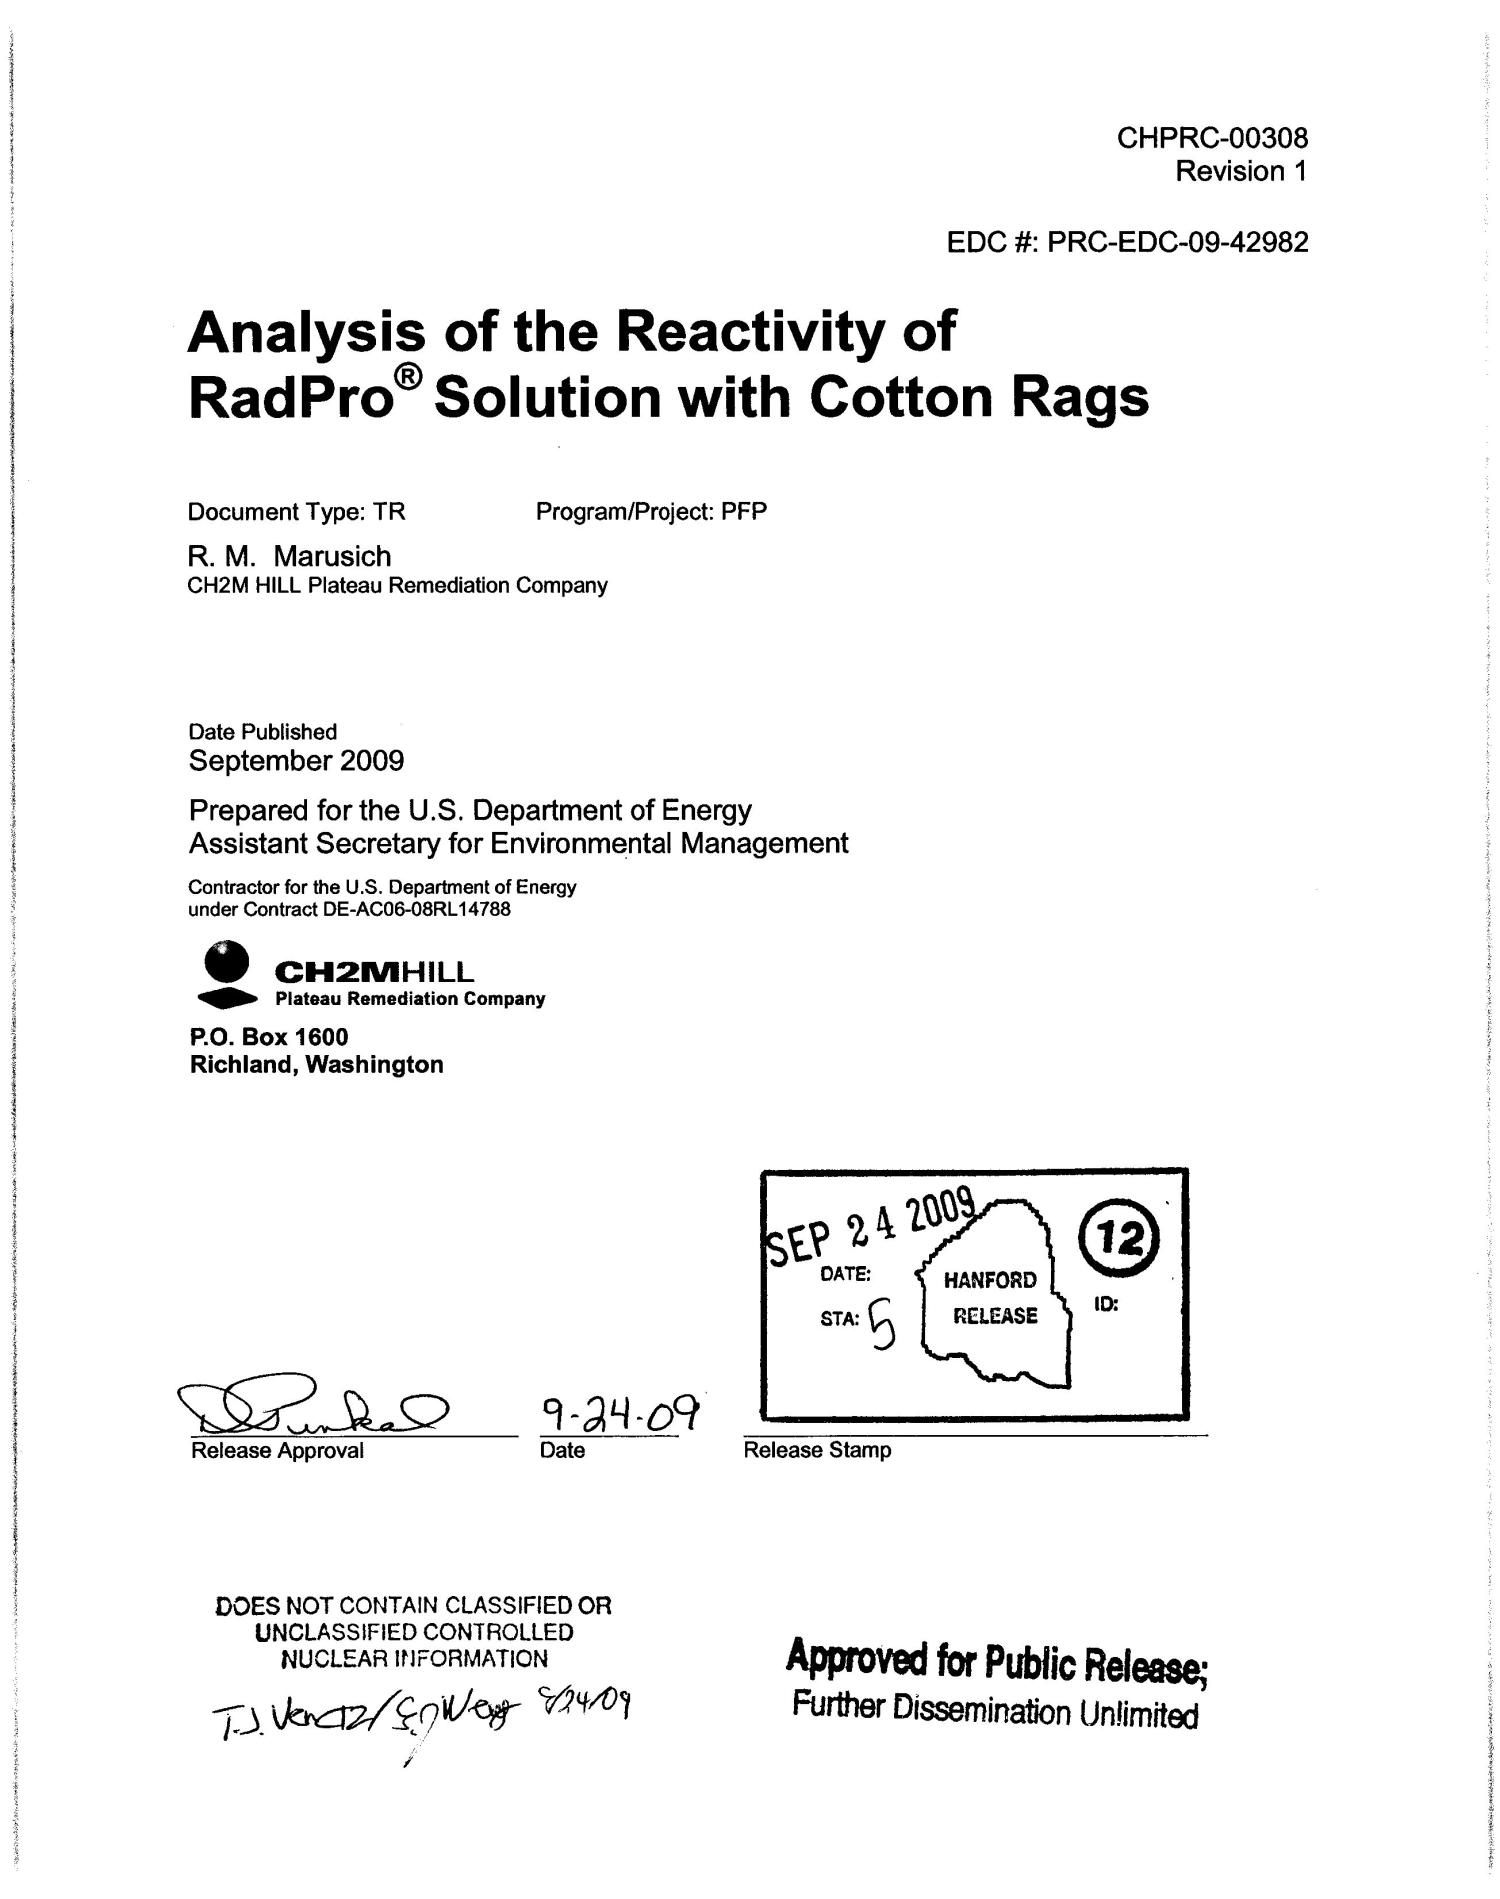 ANALYSIS OF THE REACTIVITY OF RADPRO SOLUTION WITH COTTON RAGS                                                                                                      [Sequence #]: 2 of 29